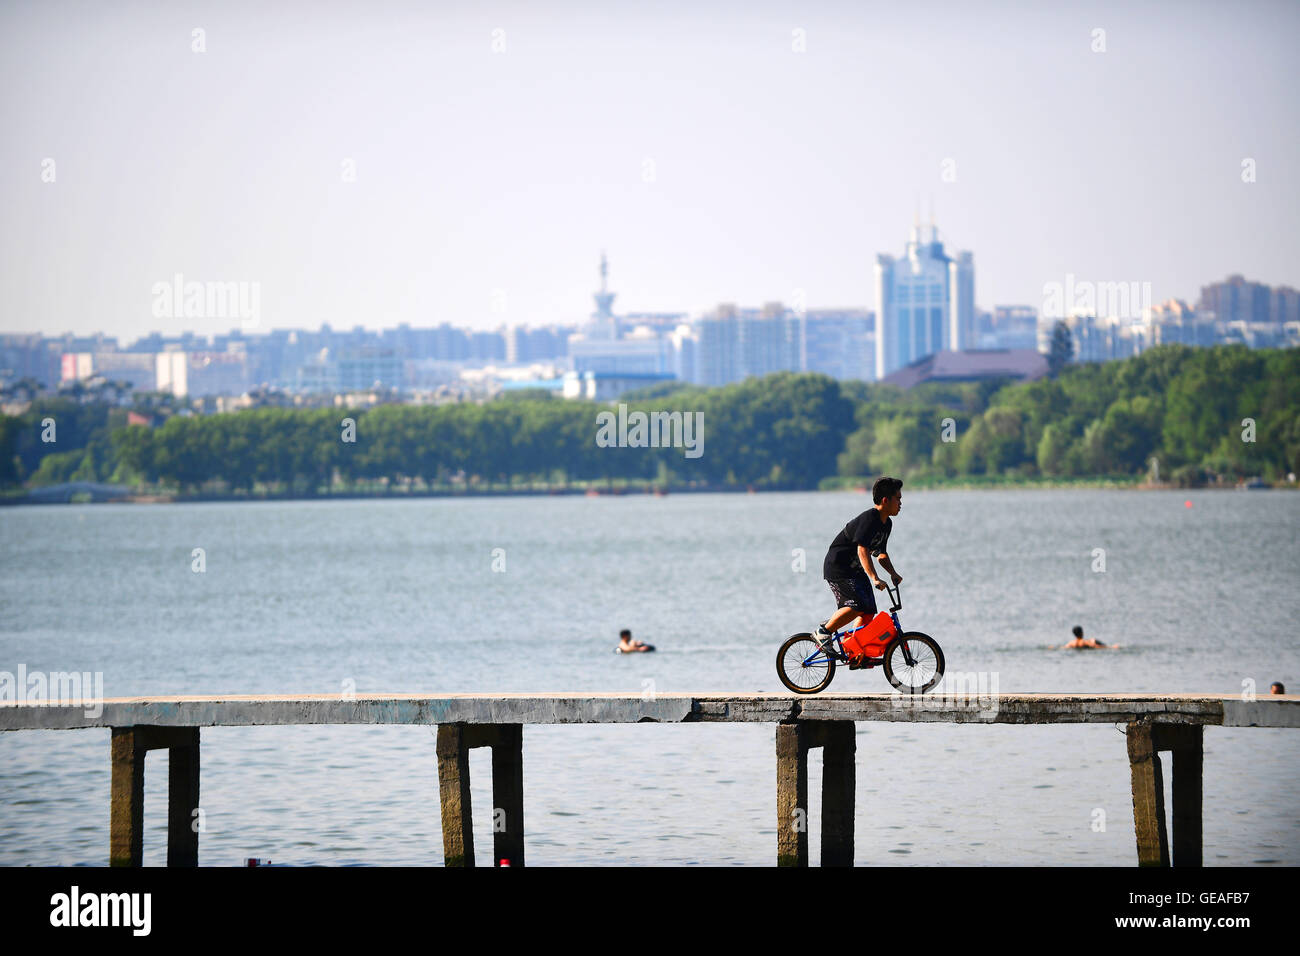 Wuhan, China's Hubei Province. 24th July, 2016. An Xsports enthusiast rides along the waterborne platform of - Stock Image